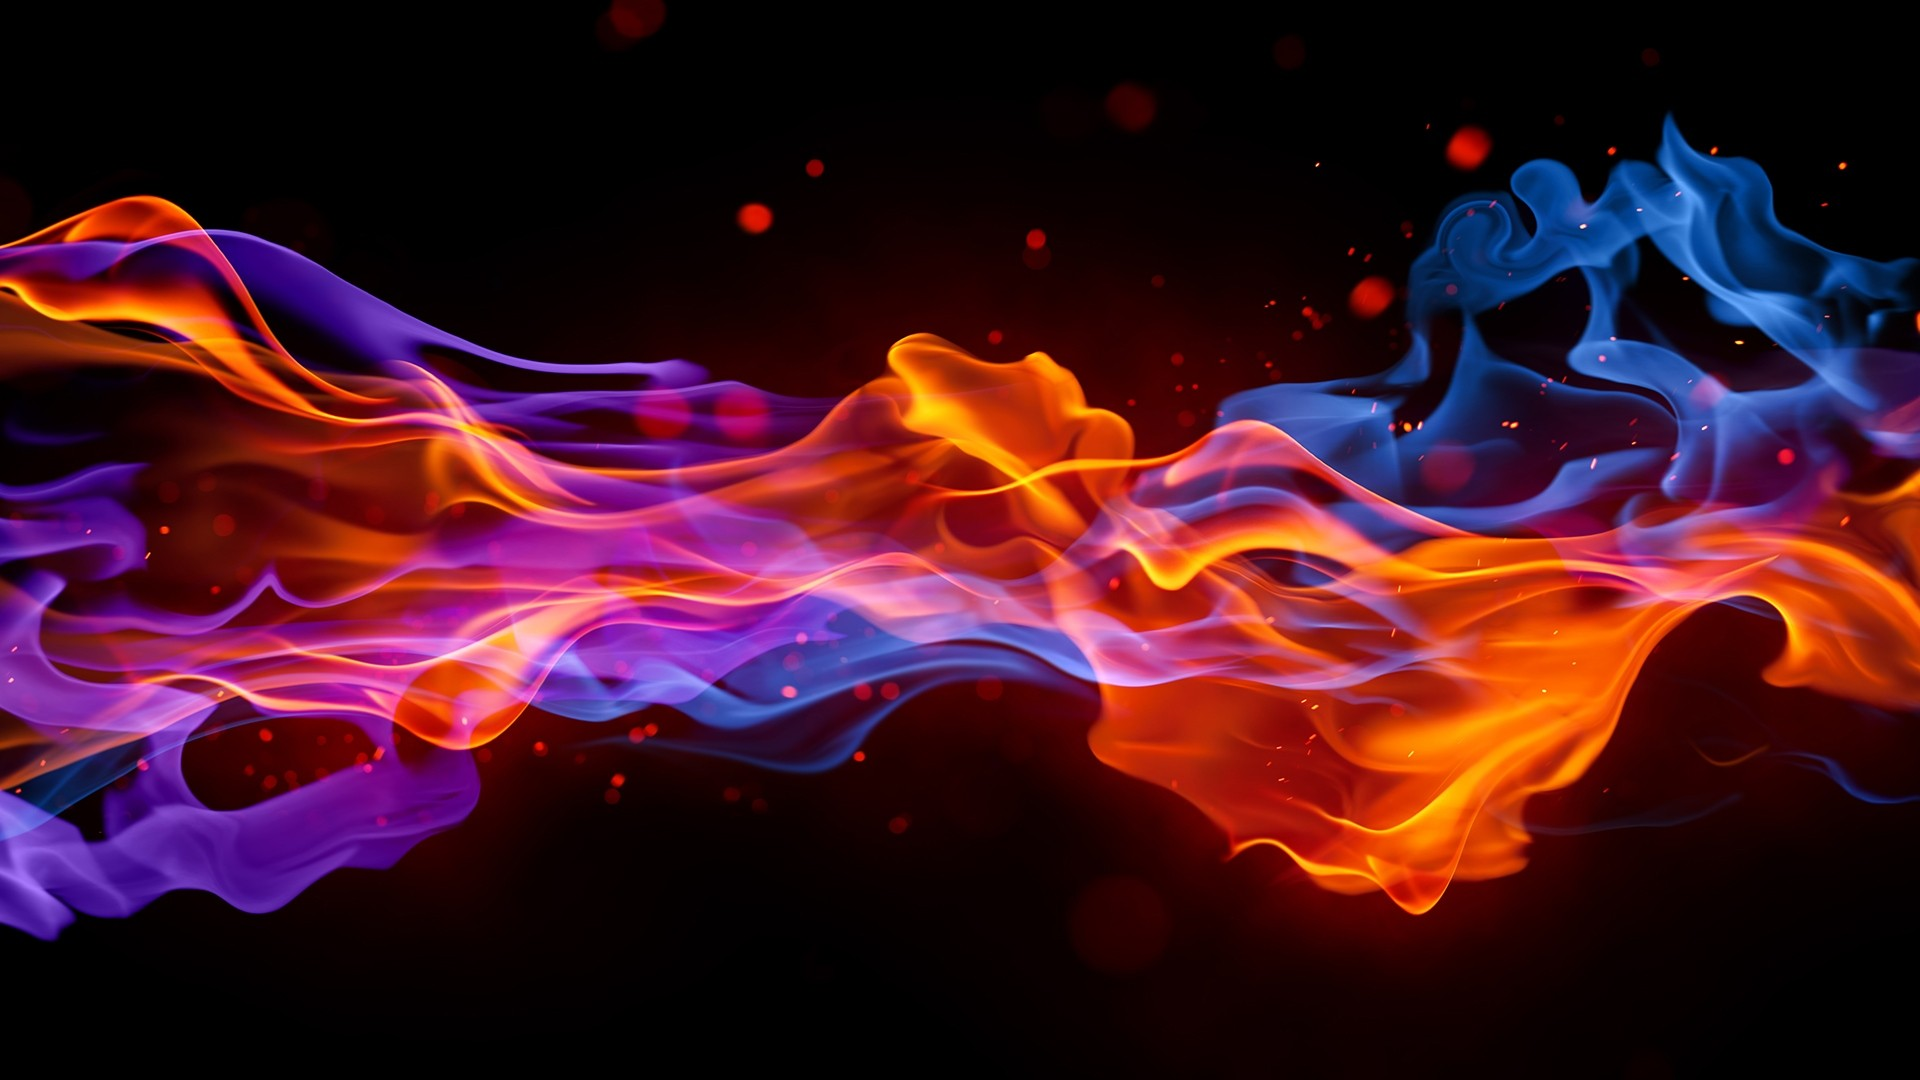 The intersection of the red and blue flames